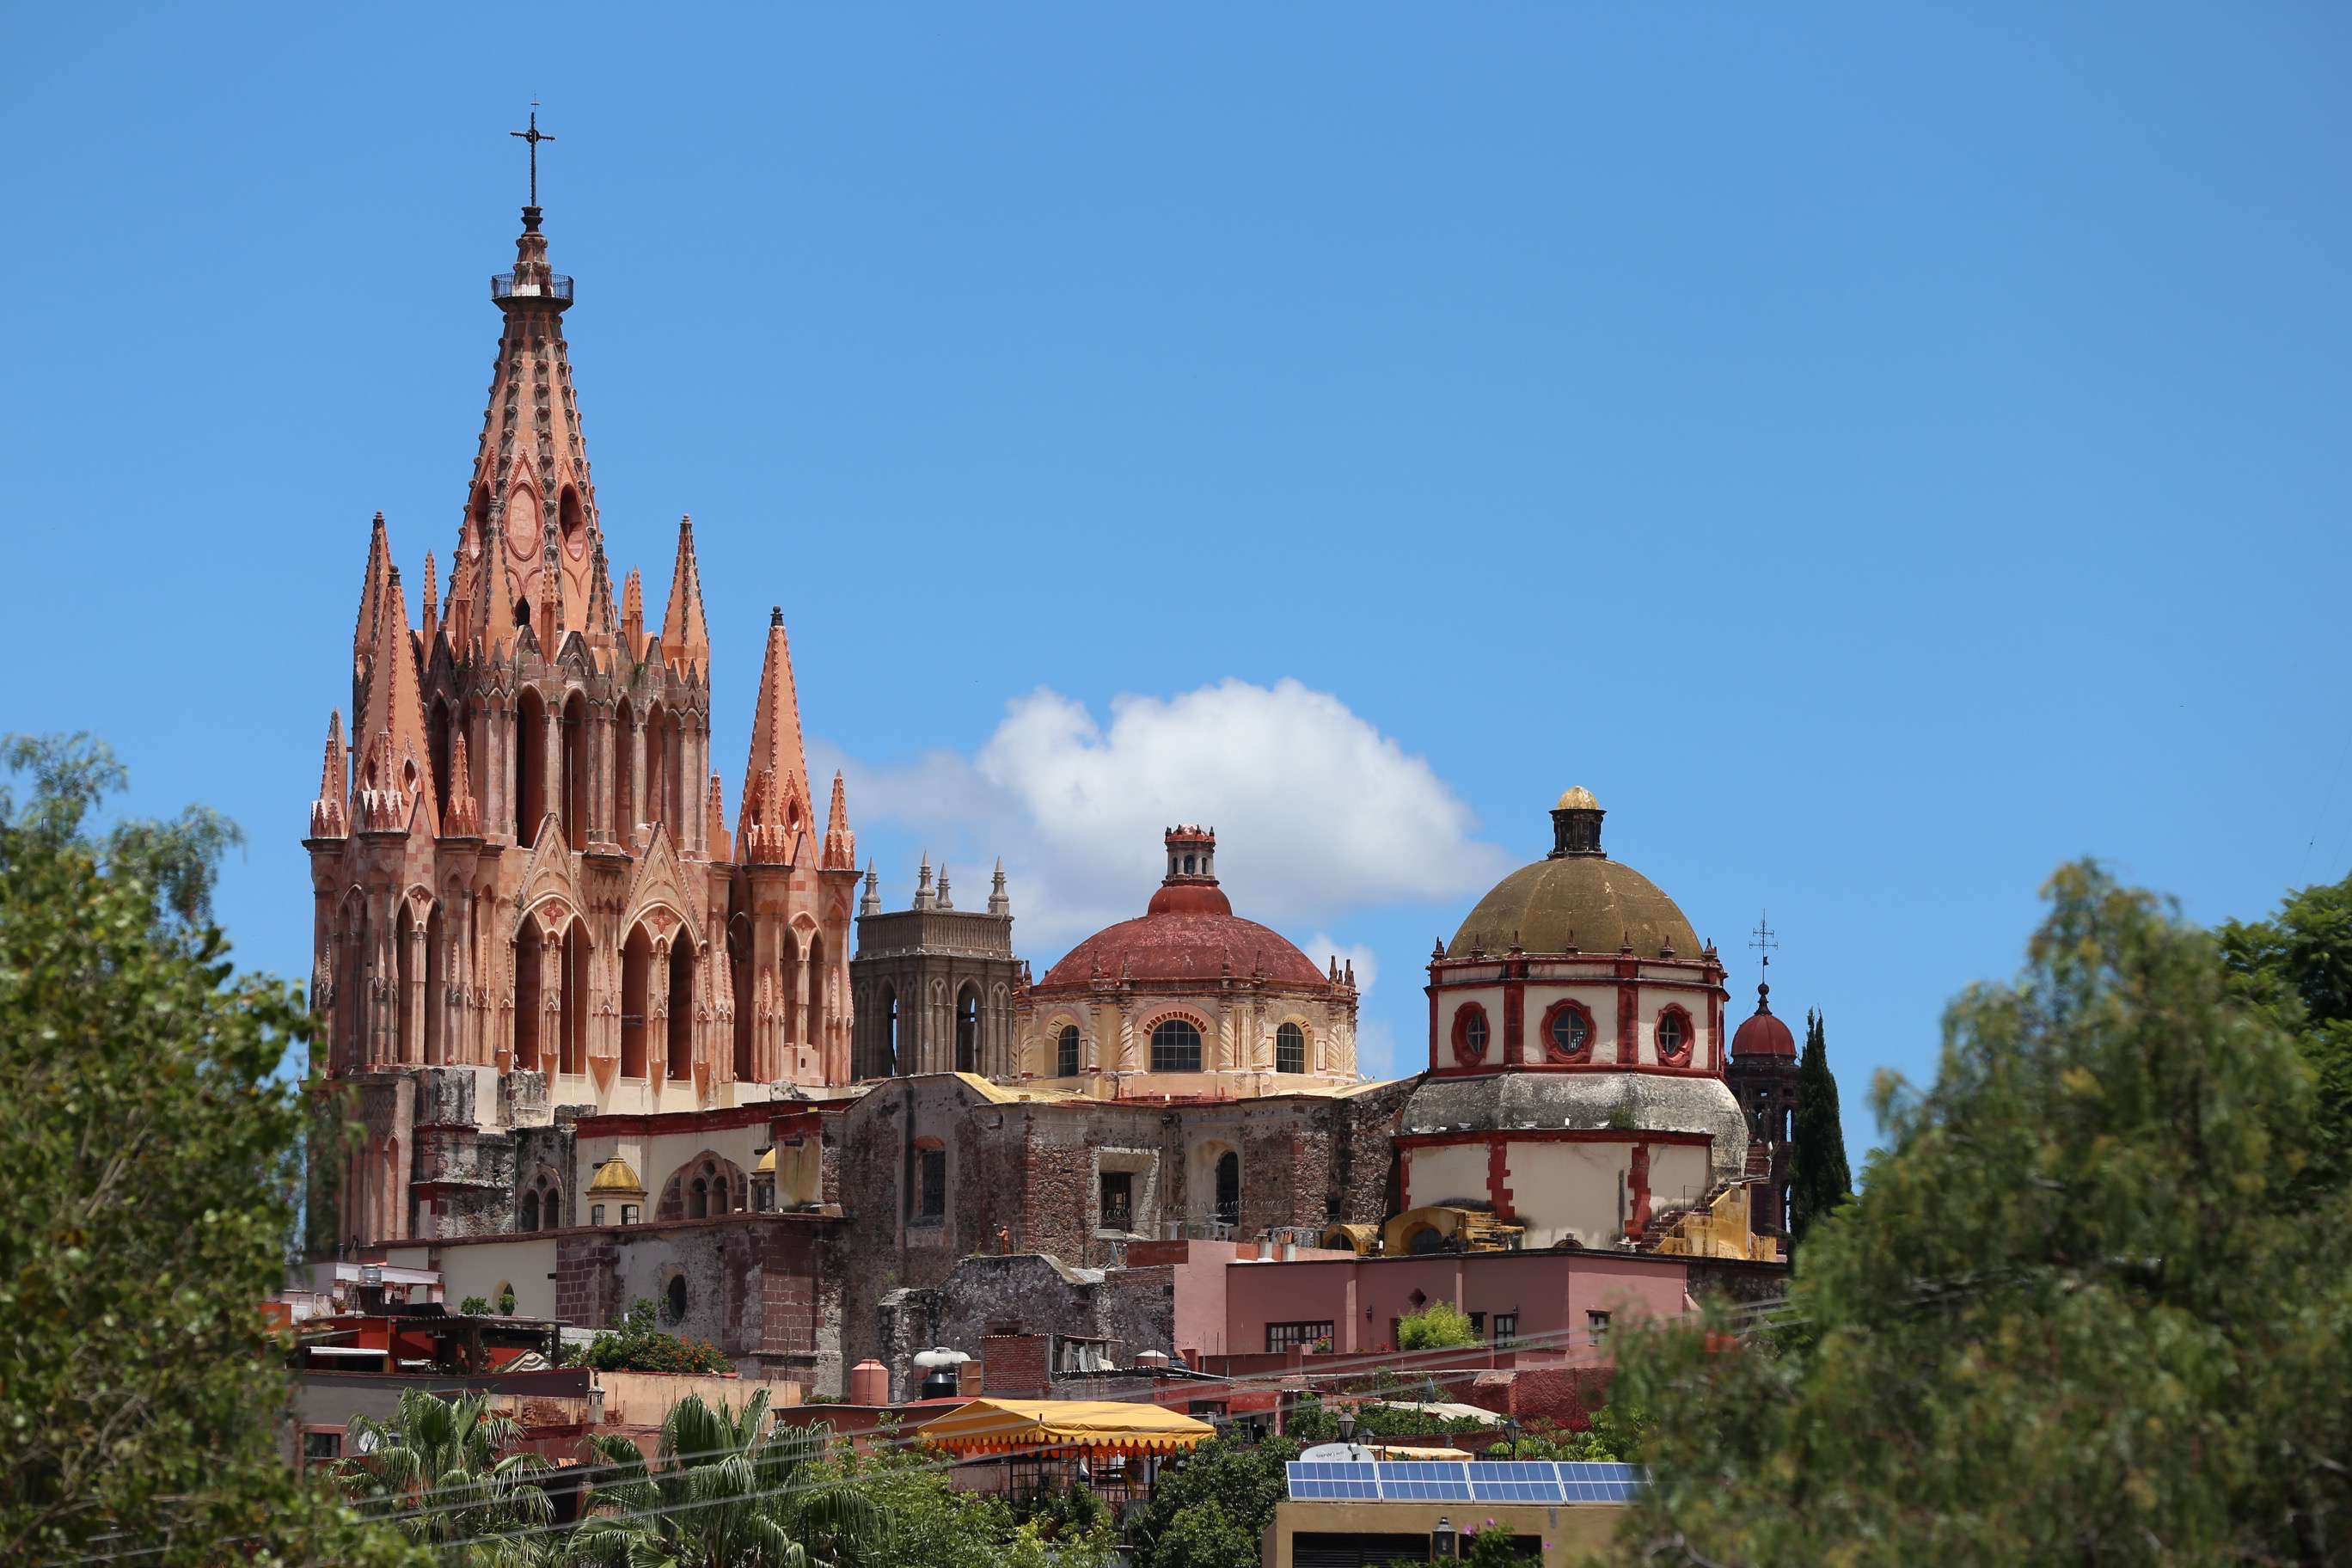 The Instituto Allende offers a great location to captures some of the city's churches.